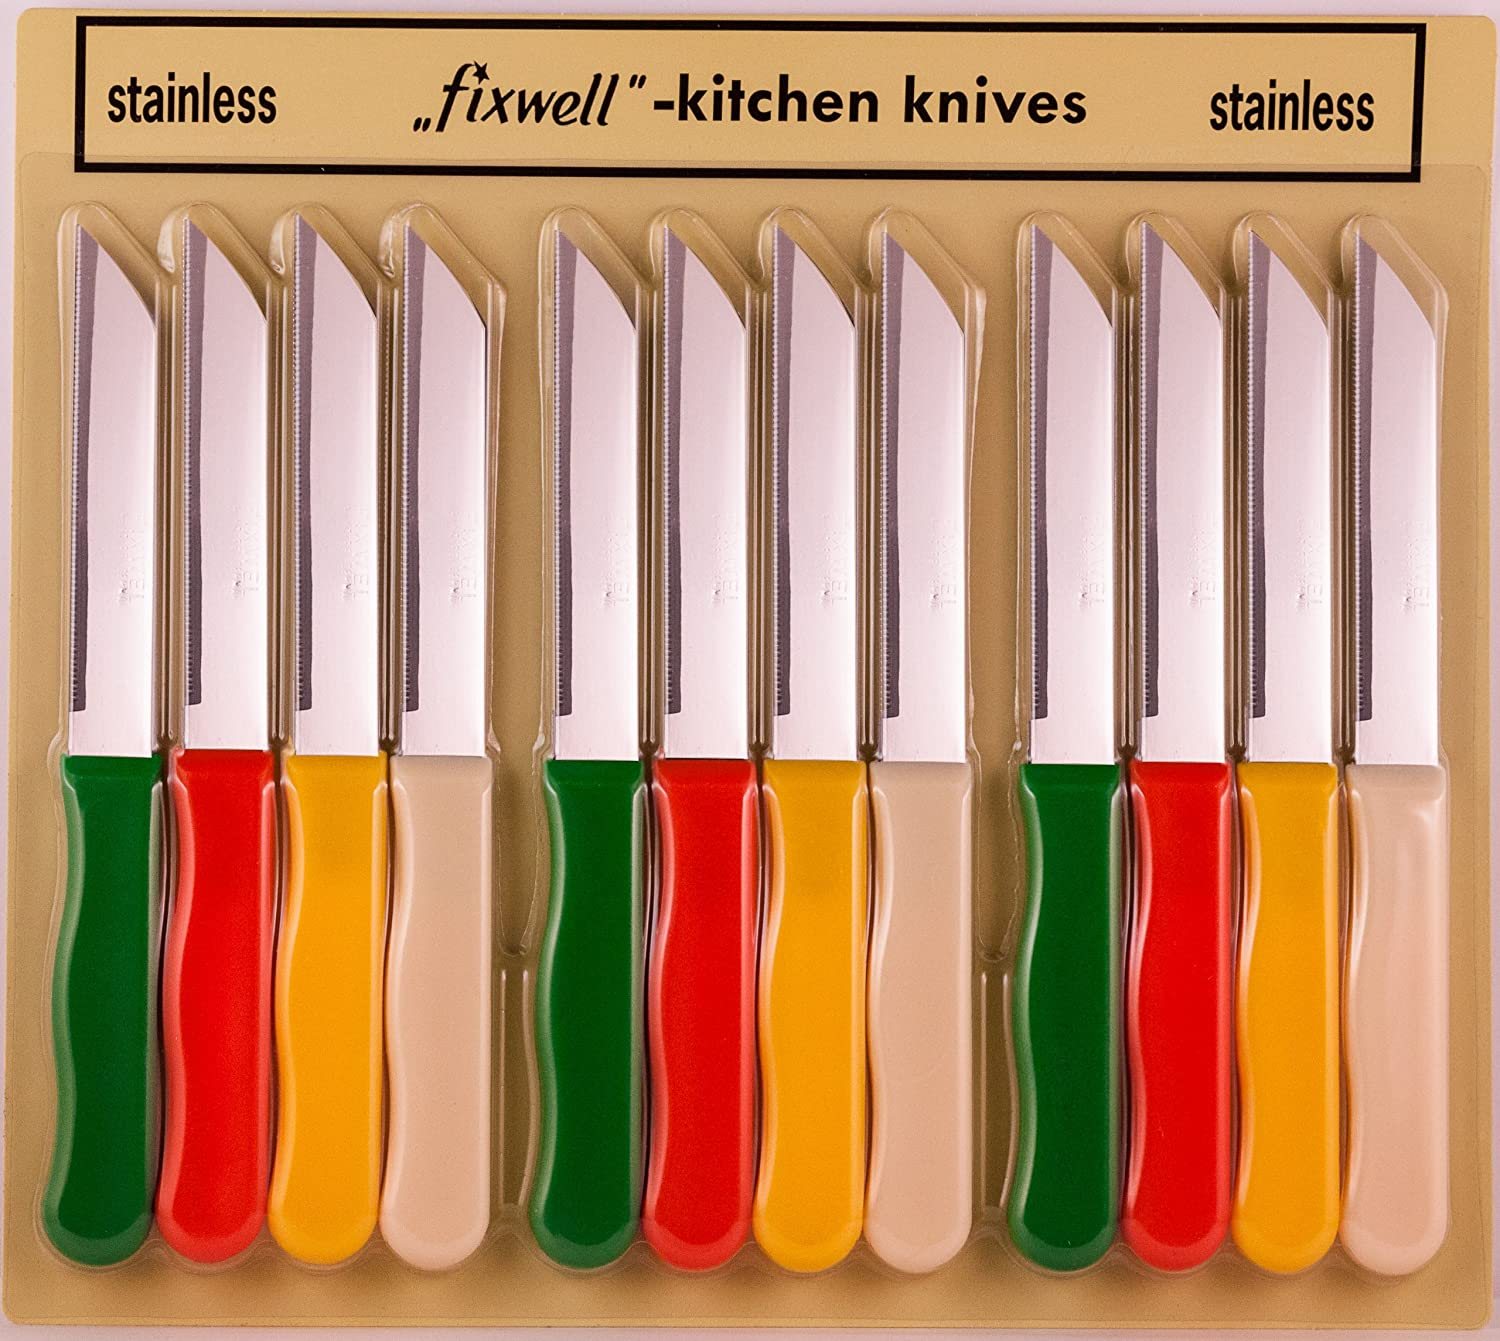 Fixwell 12-Piece Stainless Steel Knives Set, Multicolor FSB-12MB